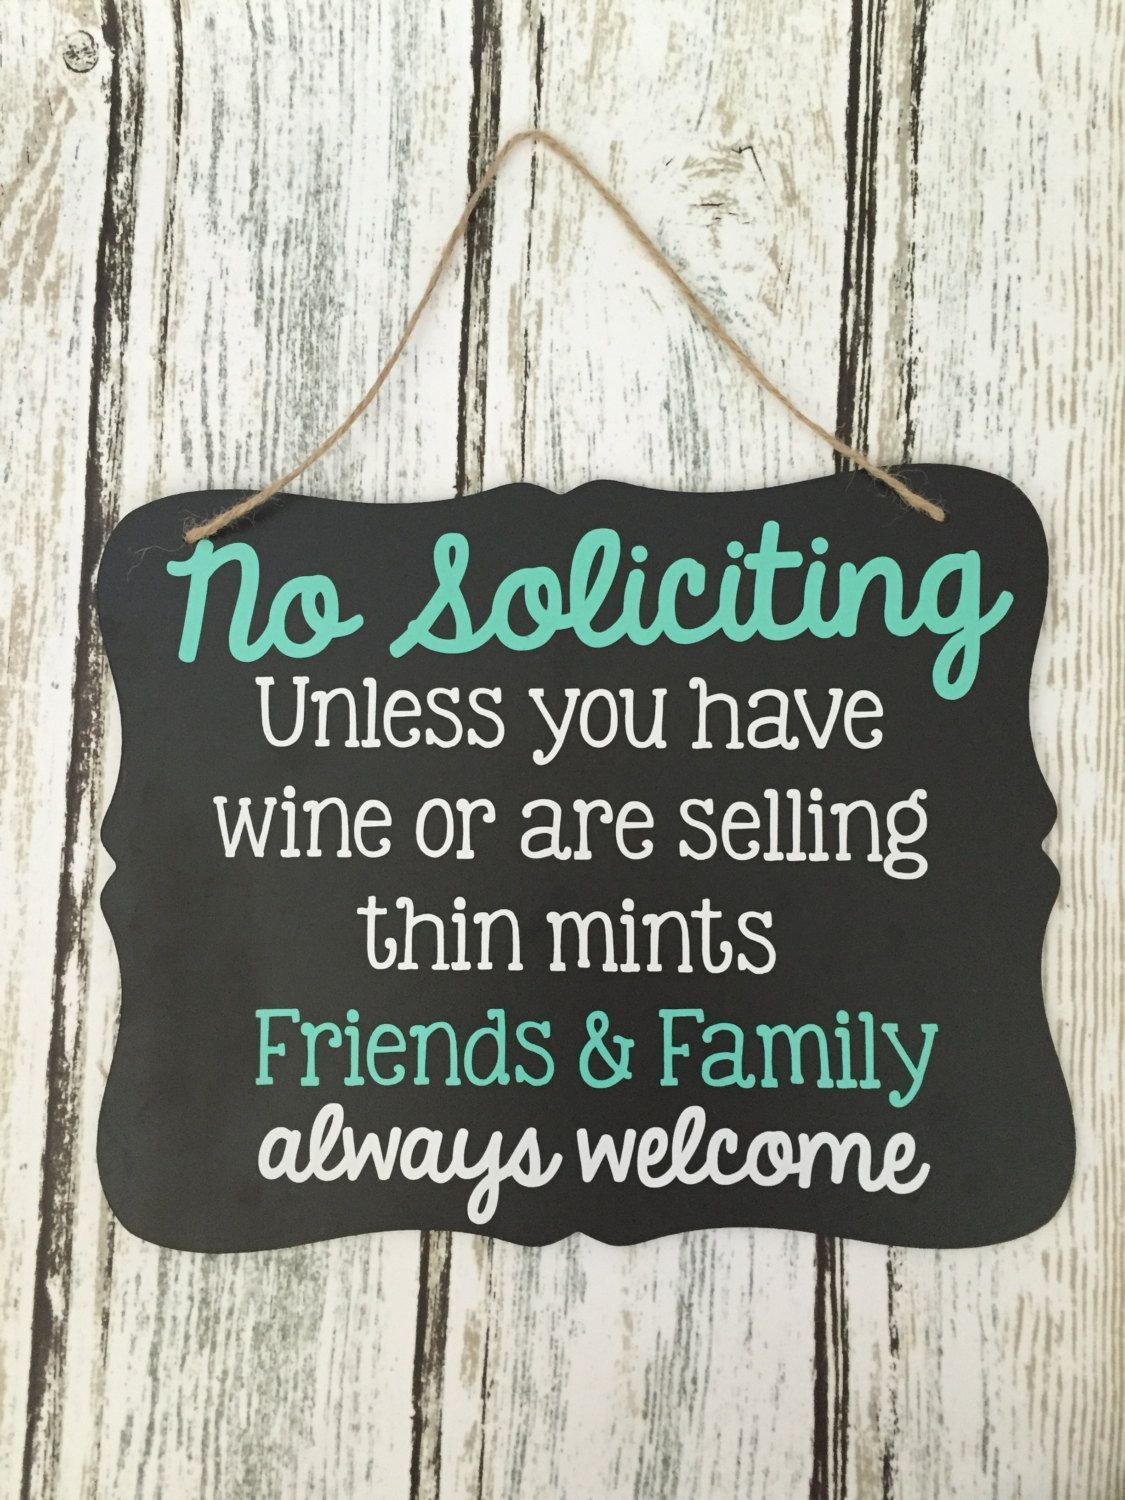 No Soliciting Sign - Thin Mints Soliciting Sign - Wine Soliciting Sign - Chalkboard Sign - Funny Solicitation Sign #nosolicitingsignfunny No Soliciting Sign - Thin Mints Soliciting Sign - Wine Soliciting Sign - Chalkboard Sign - Funny Solicitation Sign #nosolicitingsignfunny No Soliciting Sign - Thin Mints Soliciting Sign - Wine Soliciting Sign - Chalkboard Sign - Funny Solicitation Sign #nosolicitingsignfunny No Soliciting Sign - Thin Mints Soliciting Sign - Wine Soliciting Sign - Chalkboard Si #nosolicitingsignfunny